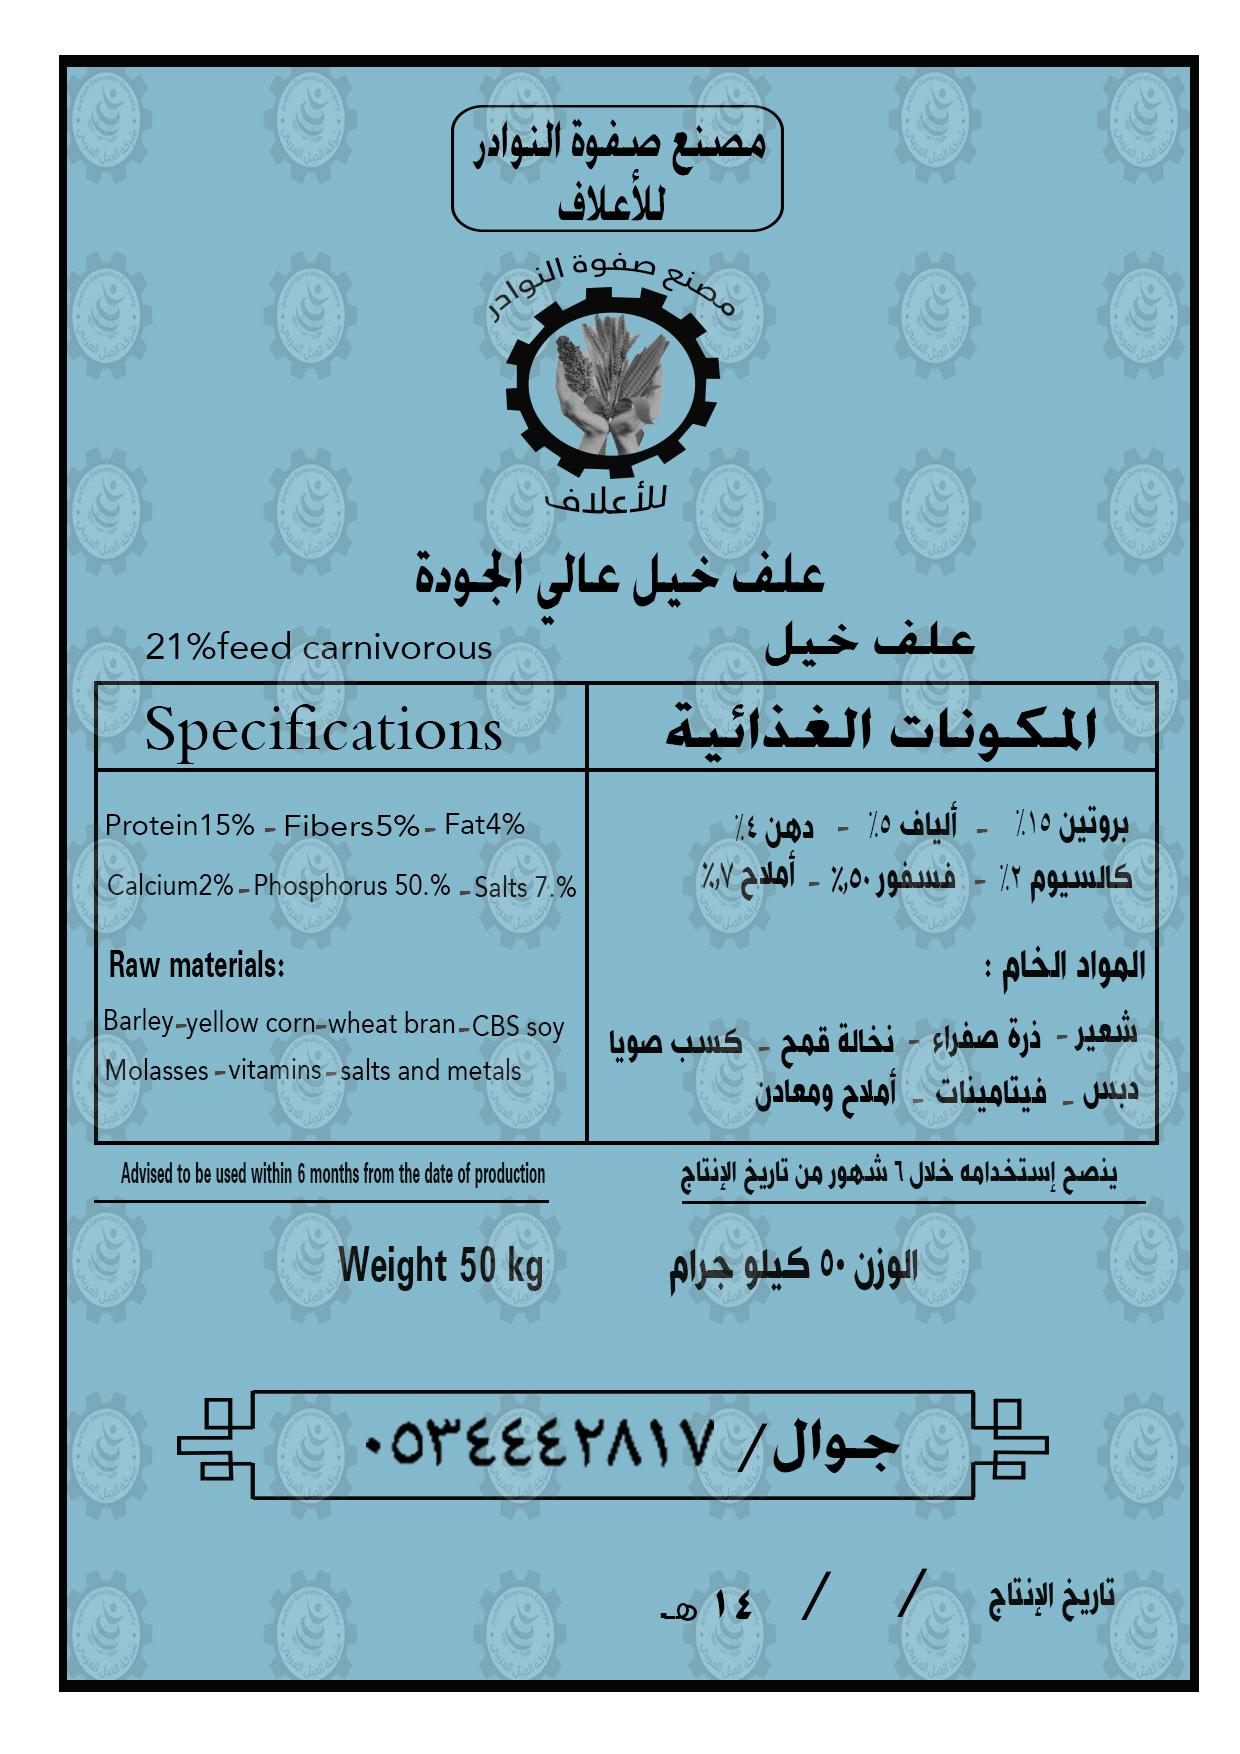 special offer from Arabian Generation d.php?hash=C58YCSJ2H